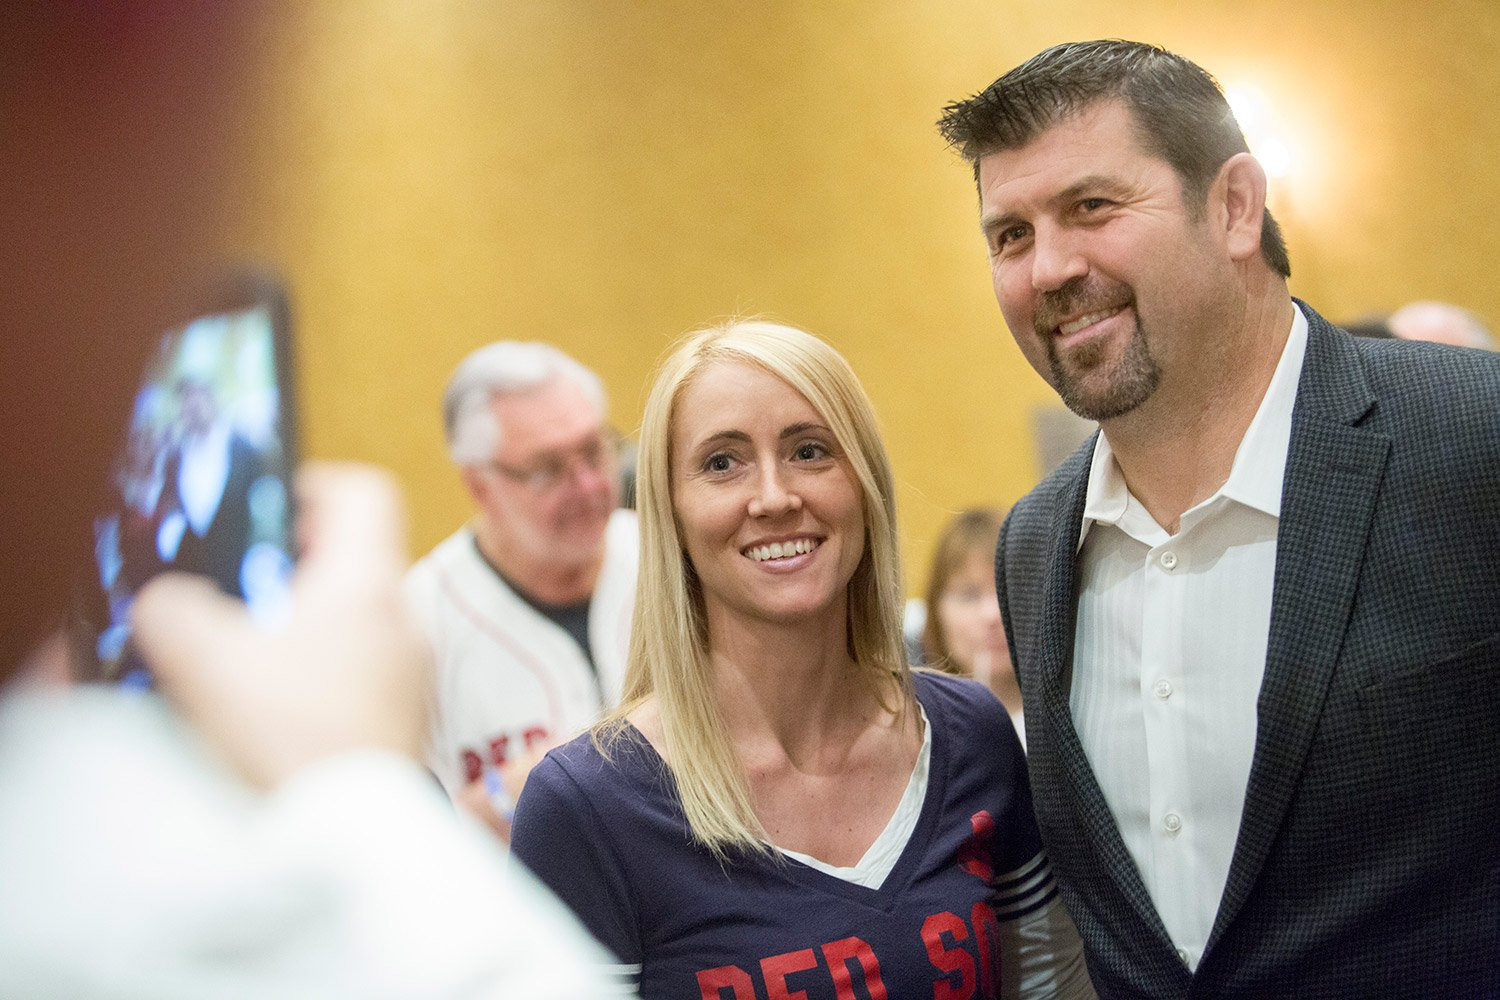 Jason Varitek, as popular as ever in Maine, poses for a photograph Friday with Angela Pease of Augusta at the Portland Sea Dogs' annual Hot Stove Dinner.